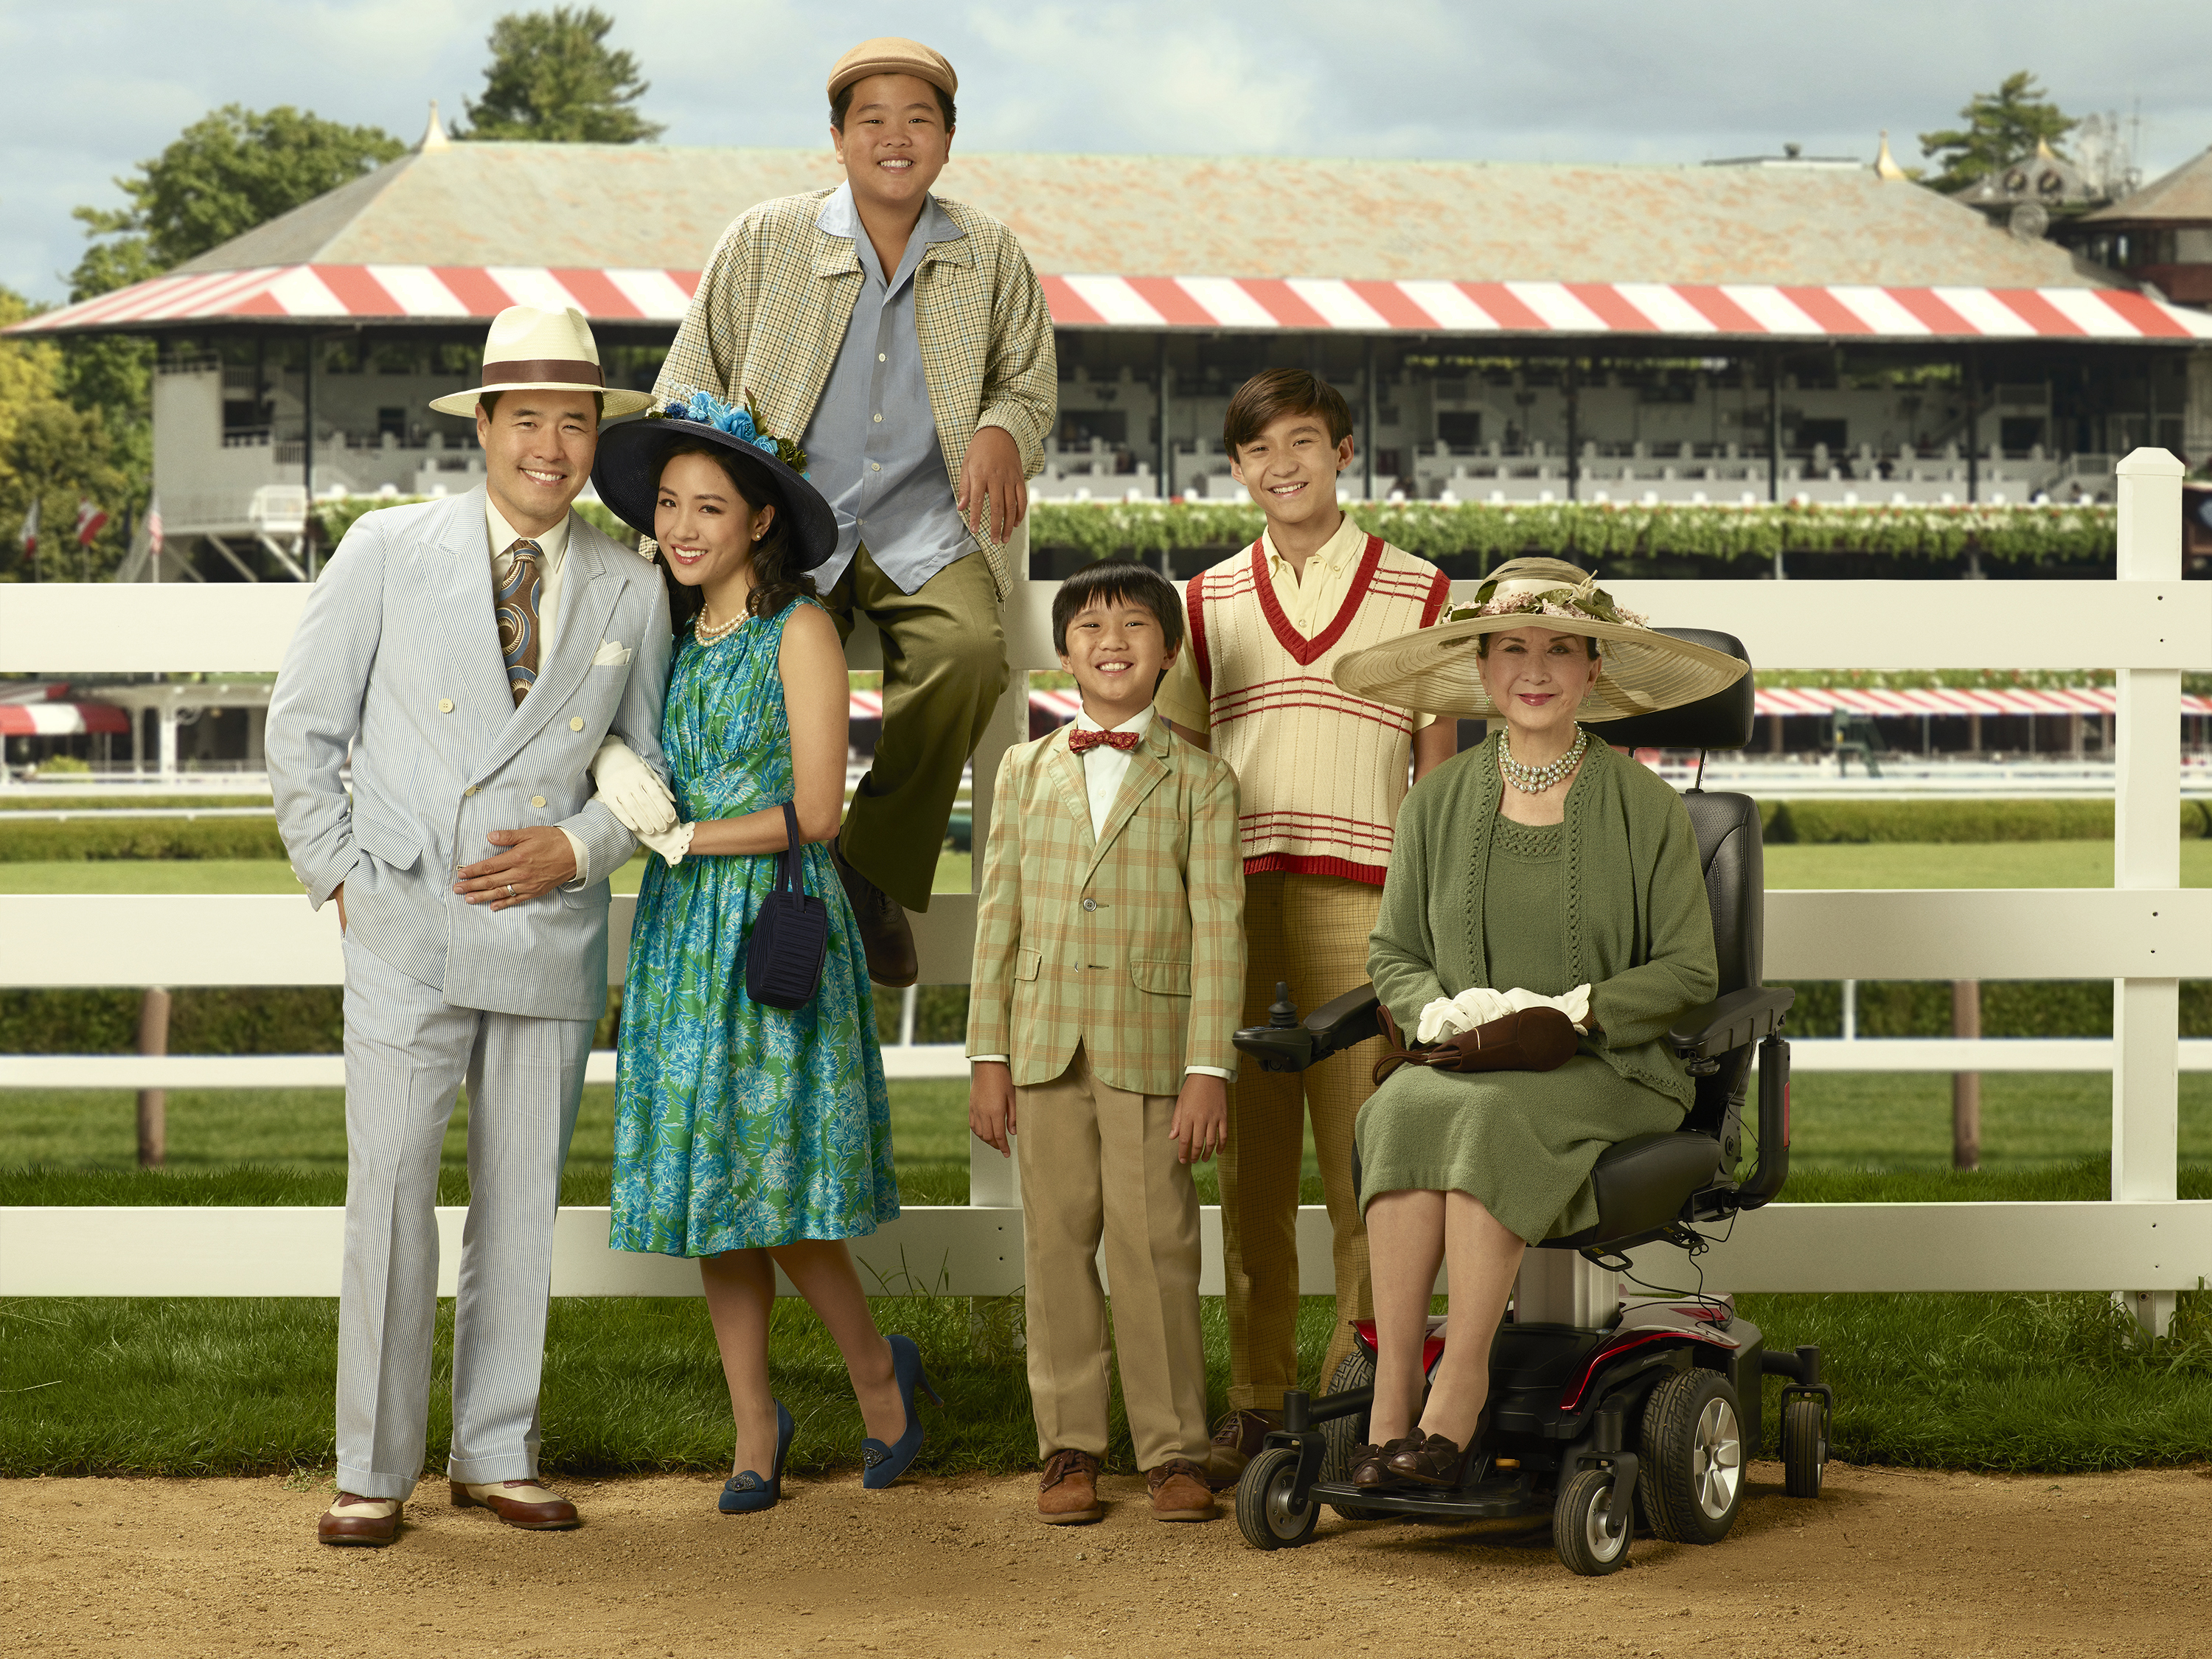 fresh off the boat returns as part of the new tgif fresh off the boat